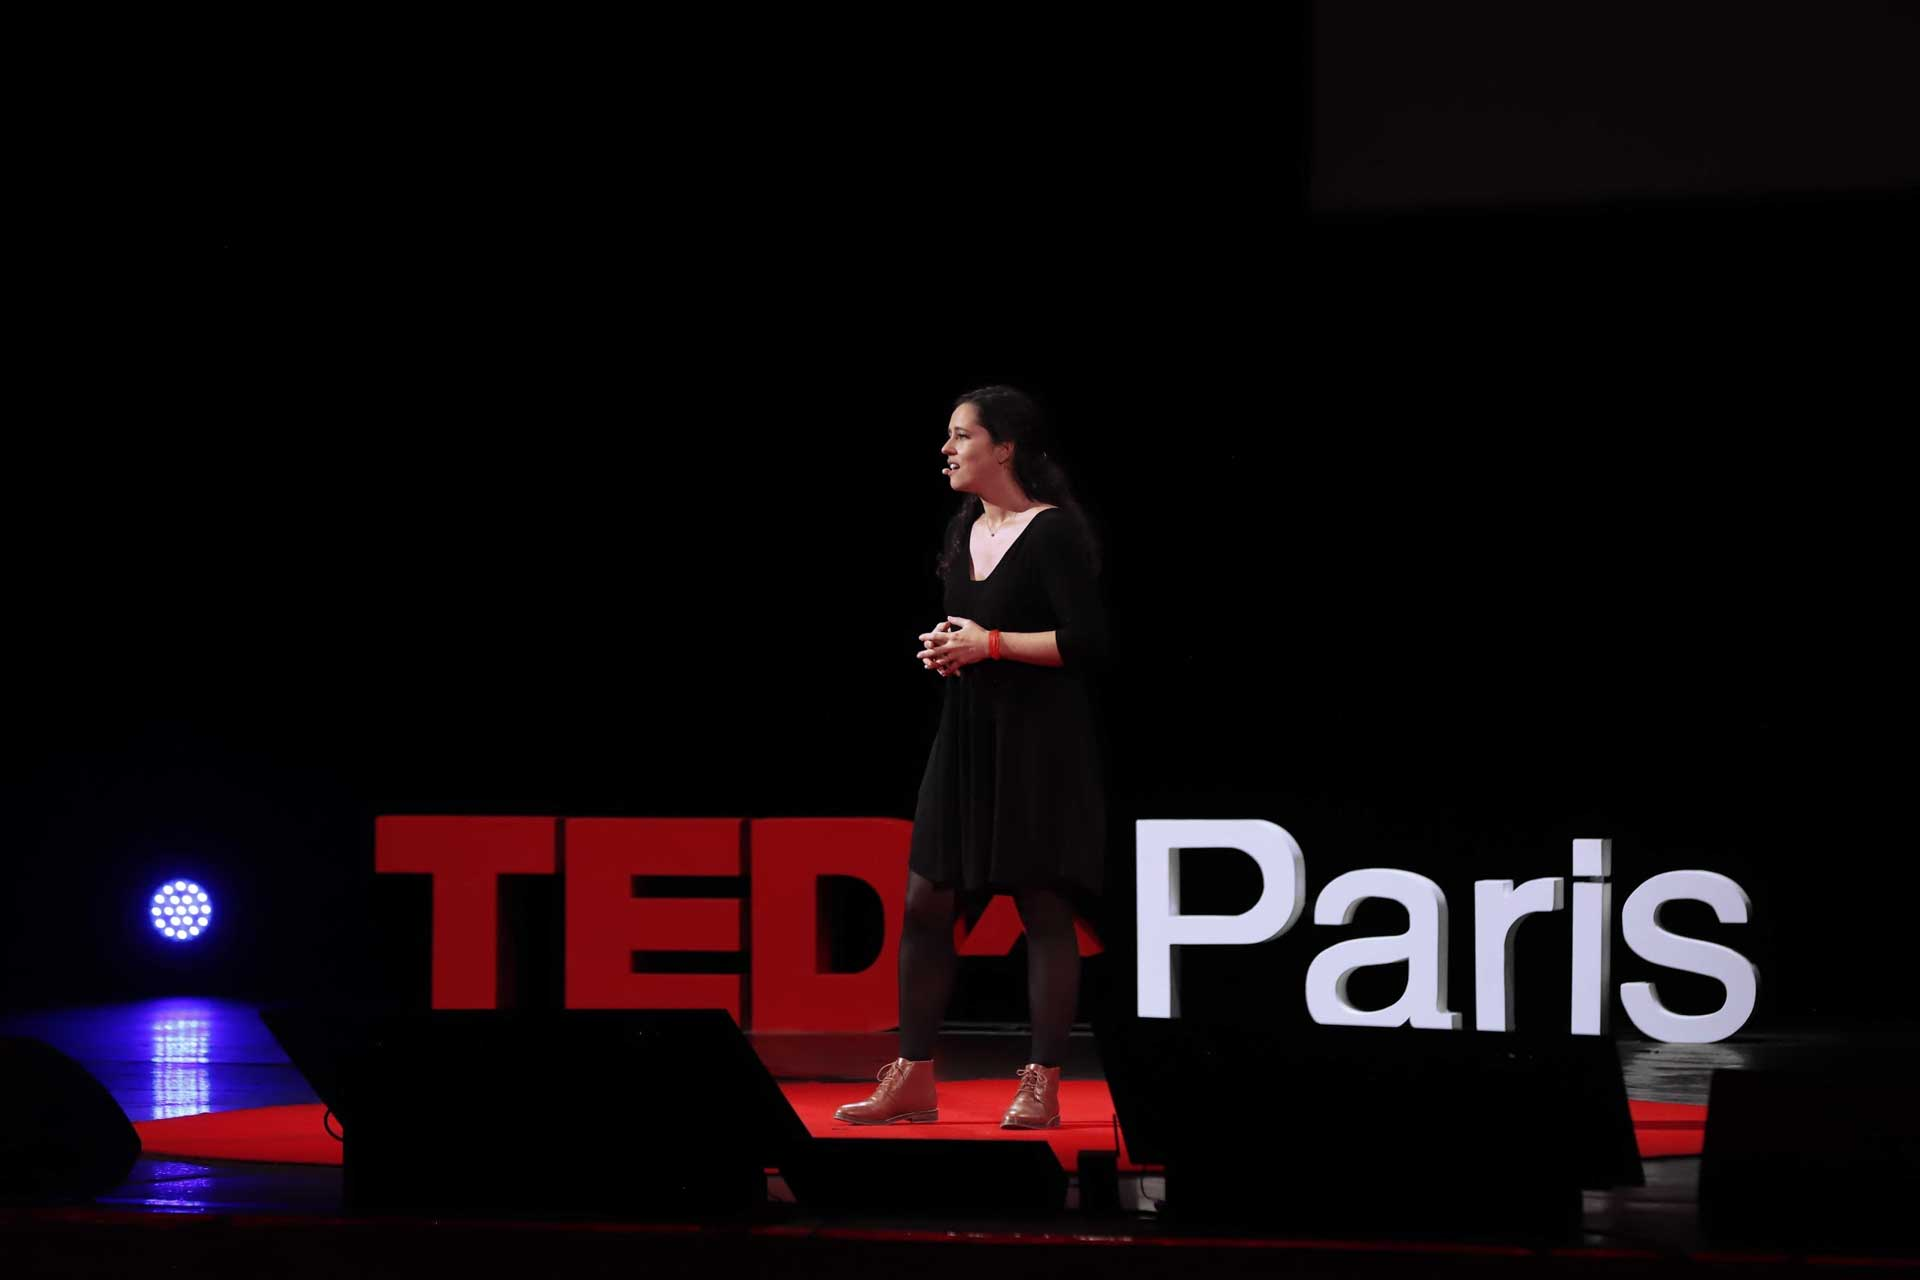 conference-TEDxParis-2018-12.jpg